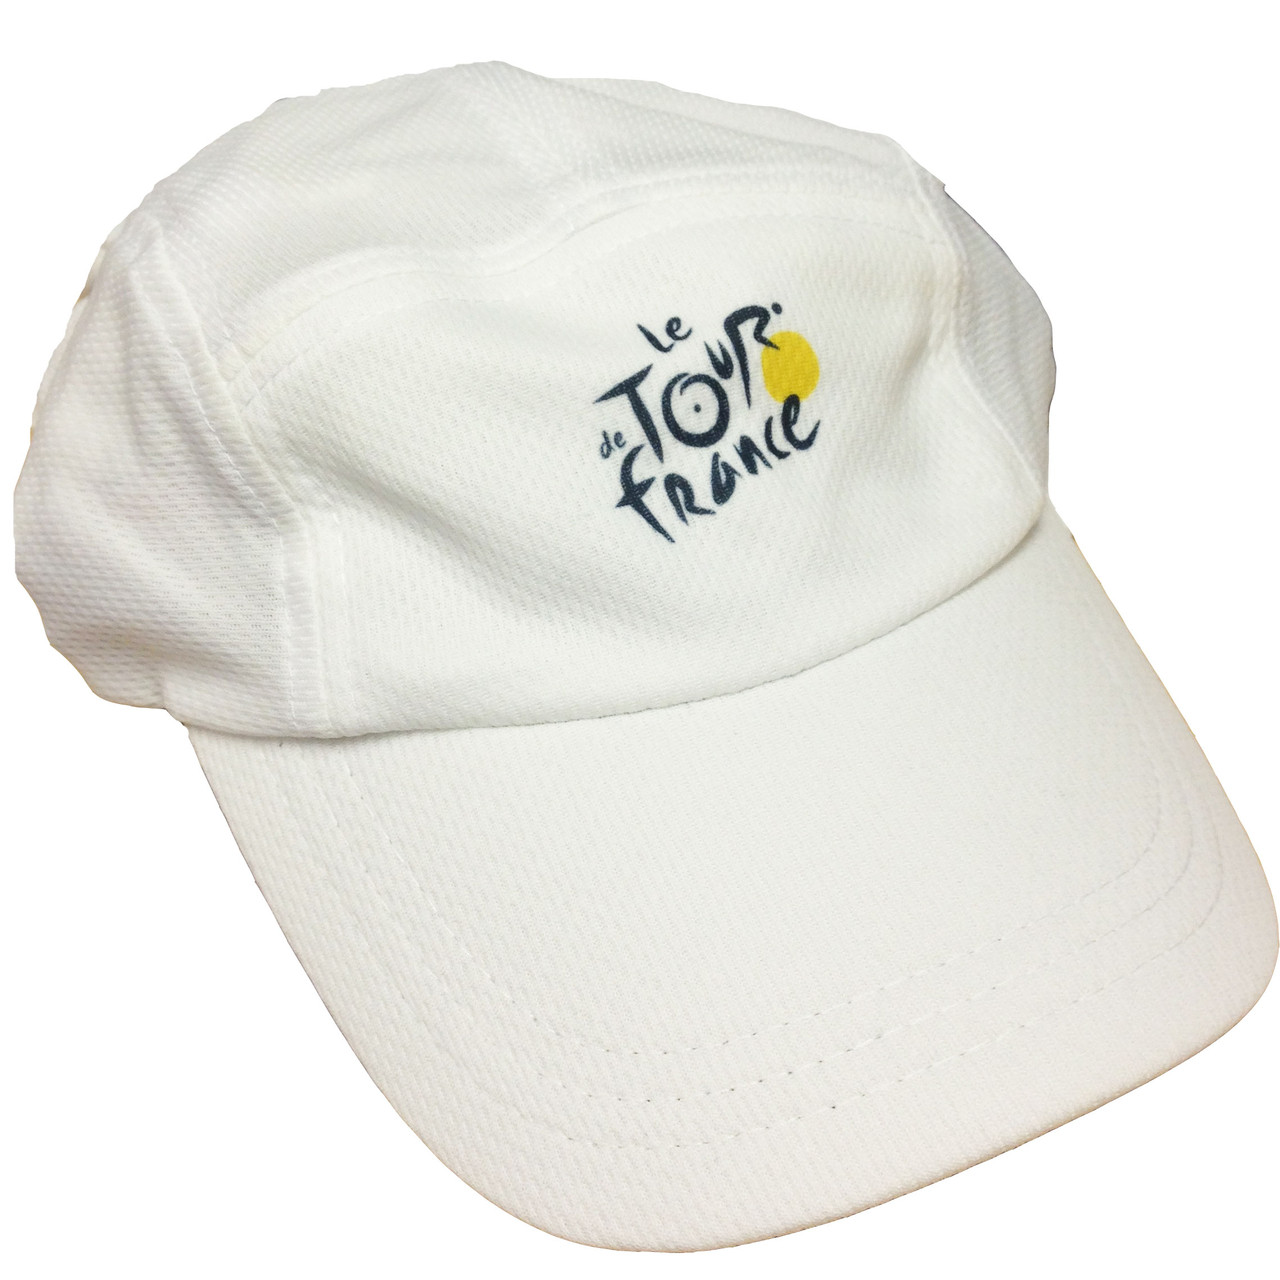 Headsweats Tour de France Race Hat price